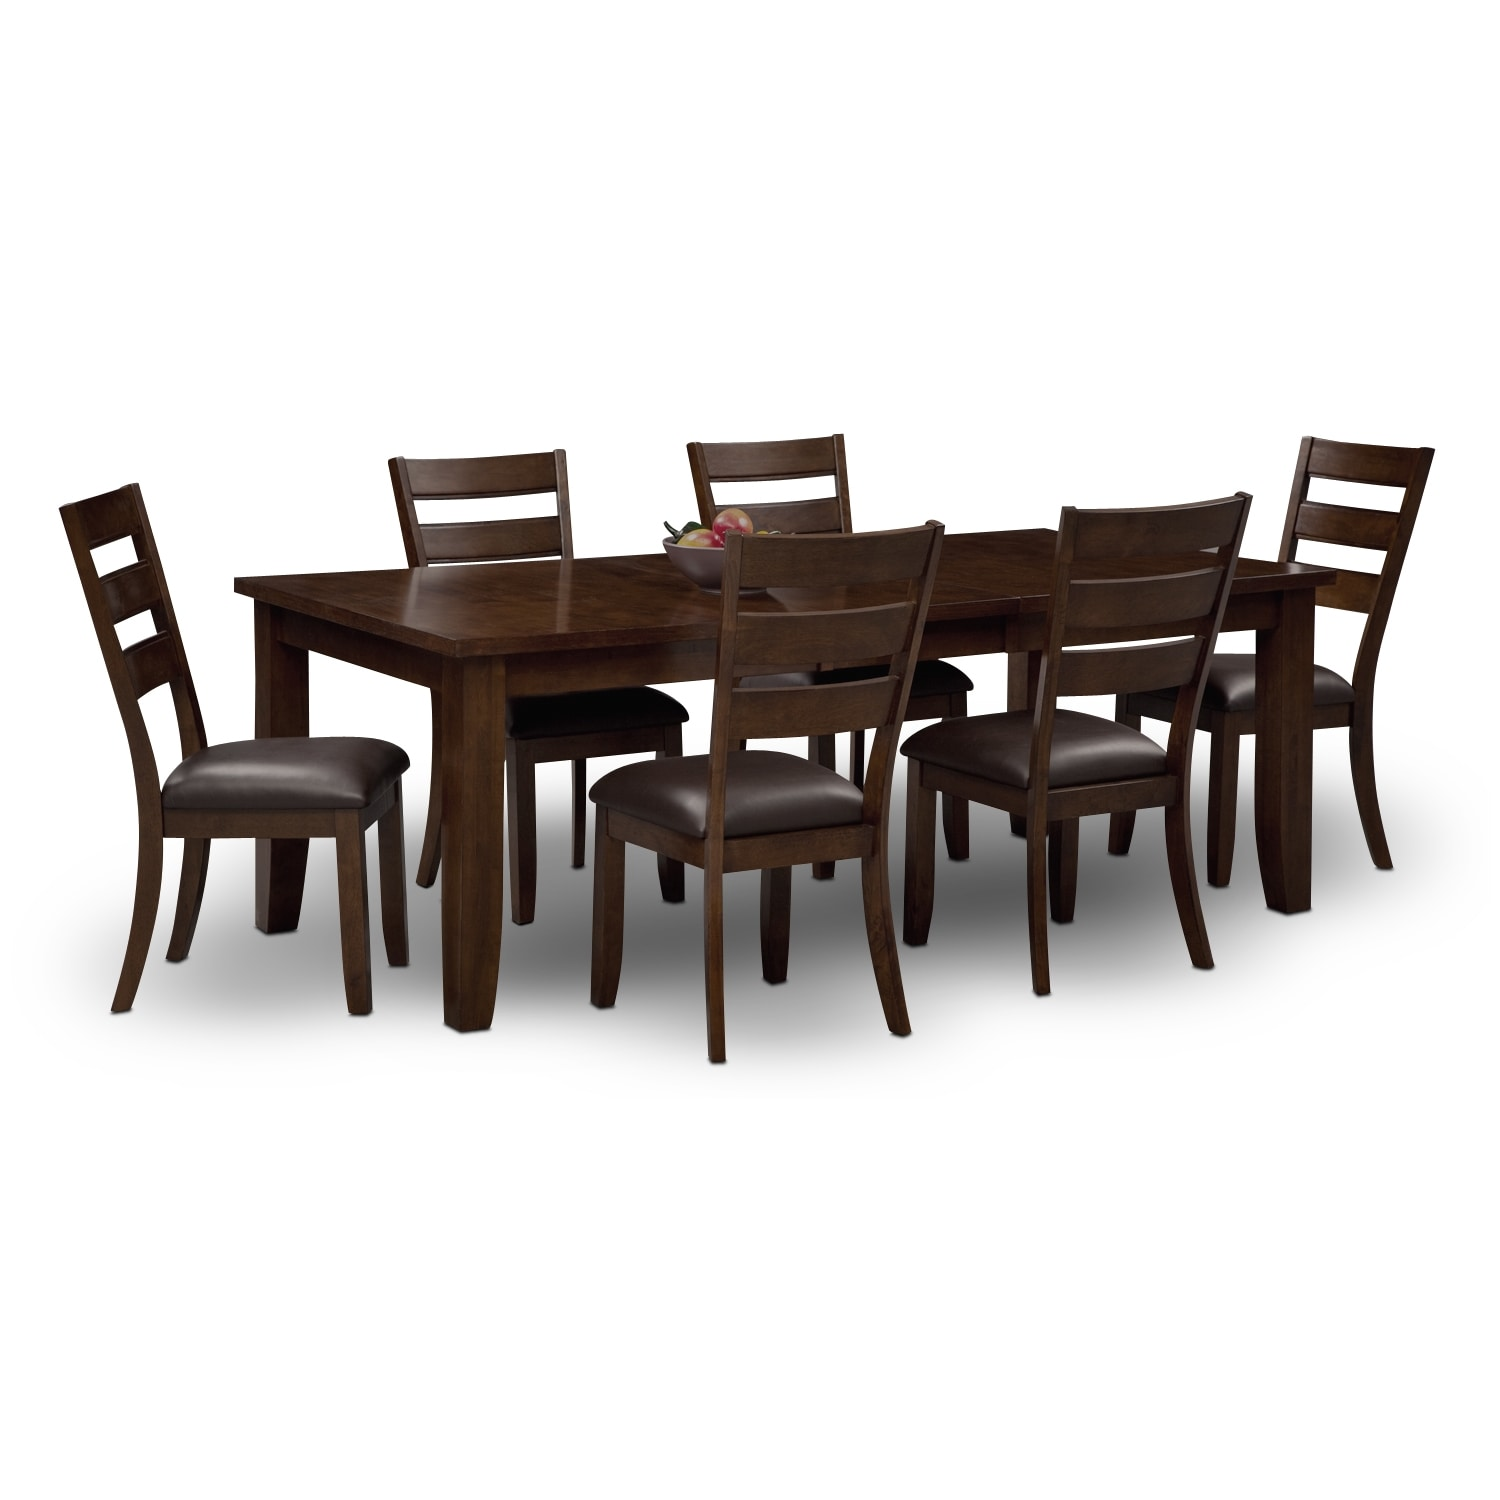 Abaco table and 6 chairs brown american signature for Dining room table for 6